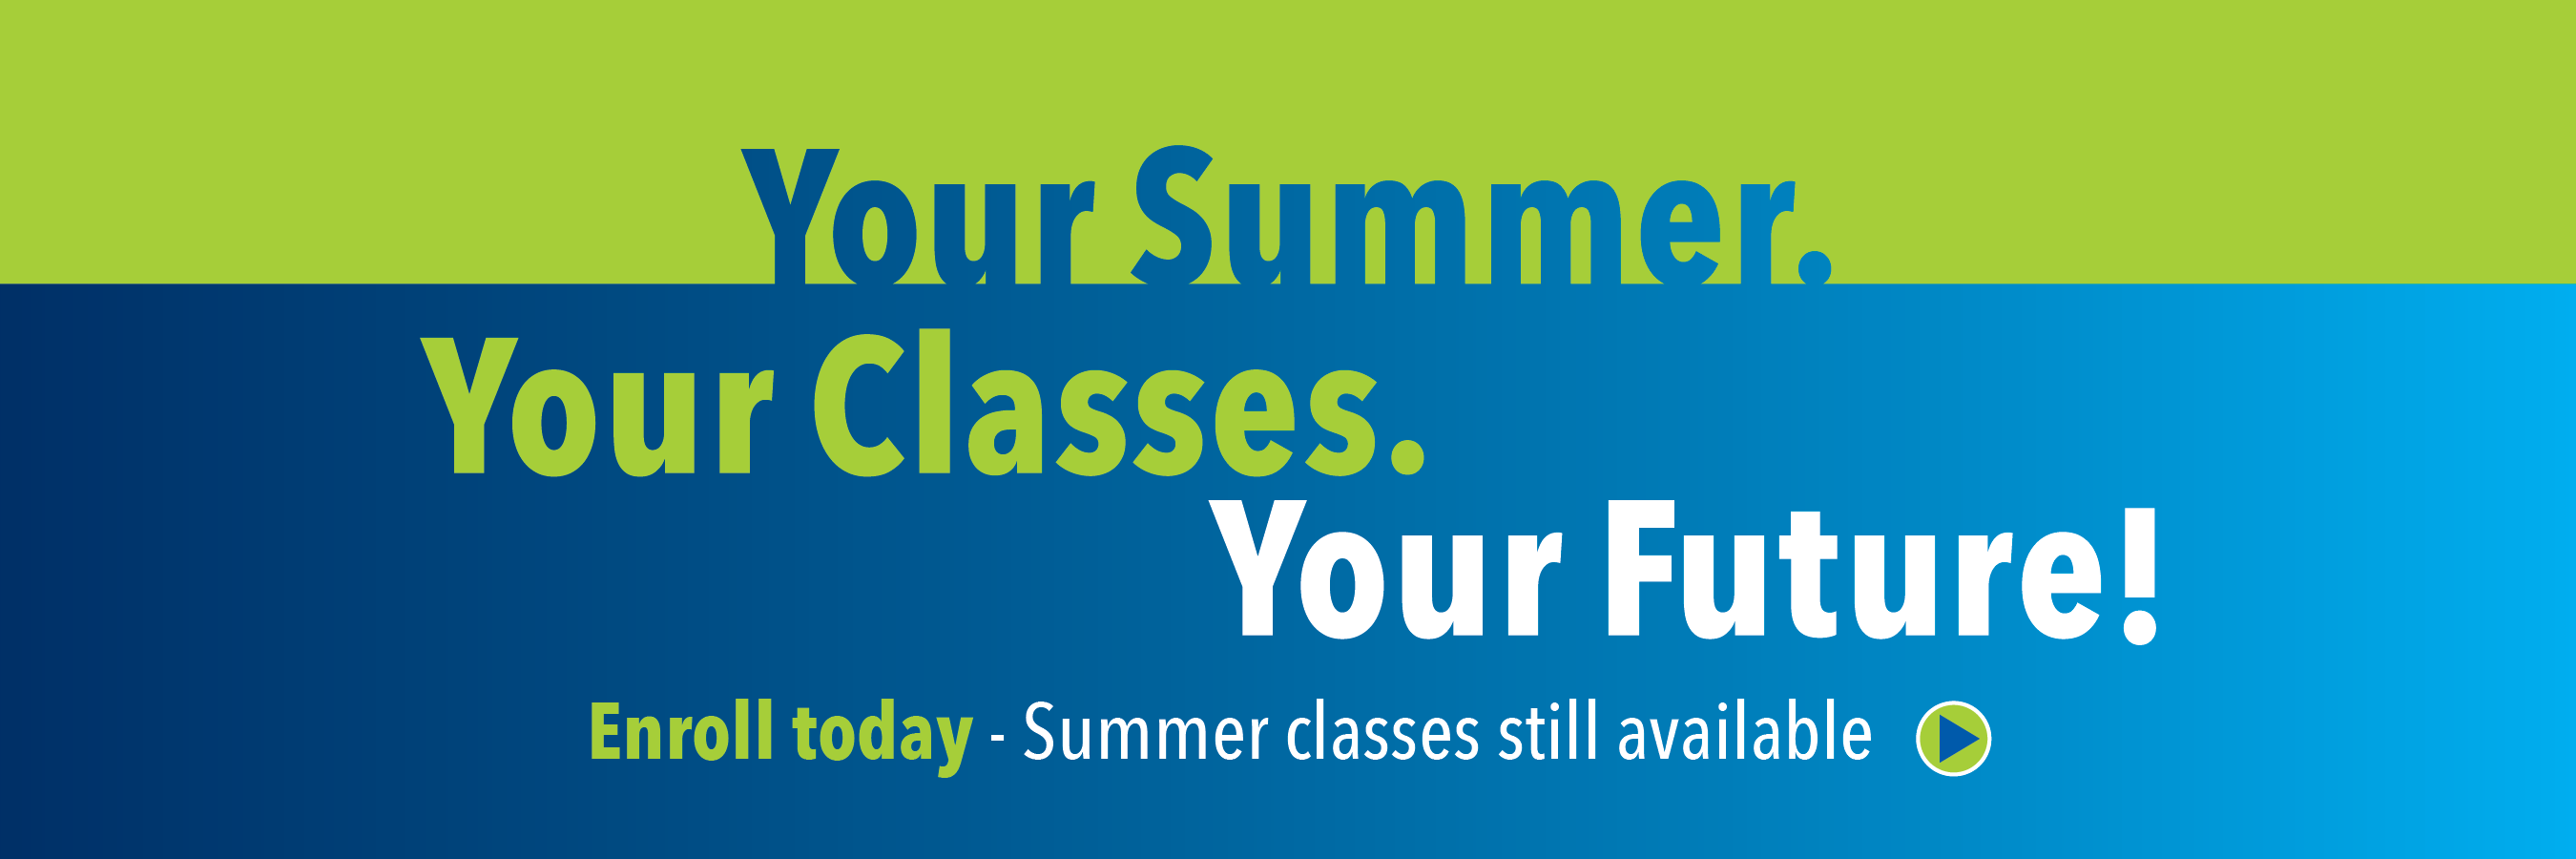 Your summer. your classes. your future. Summer classes are still available. Enroll now.